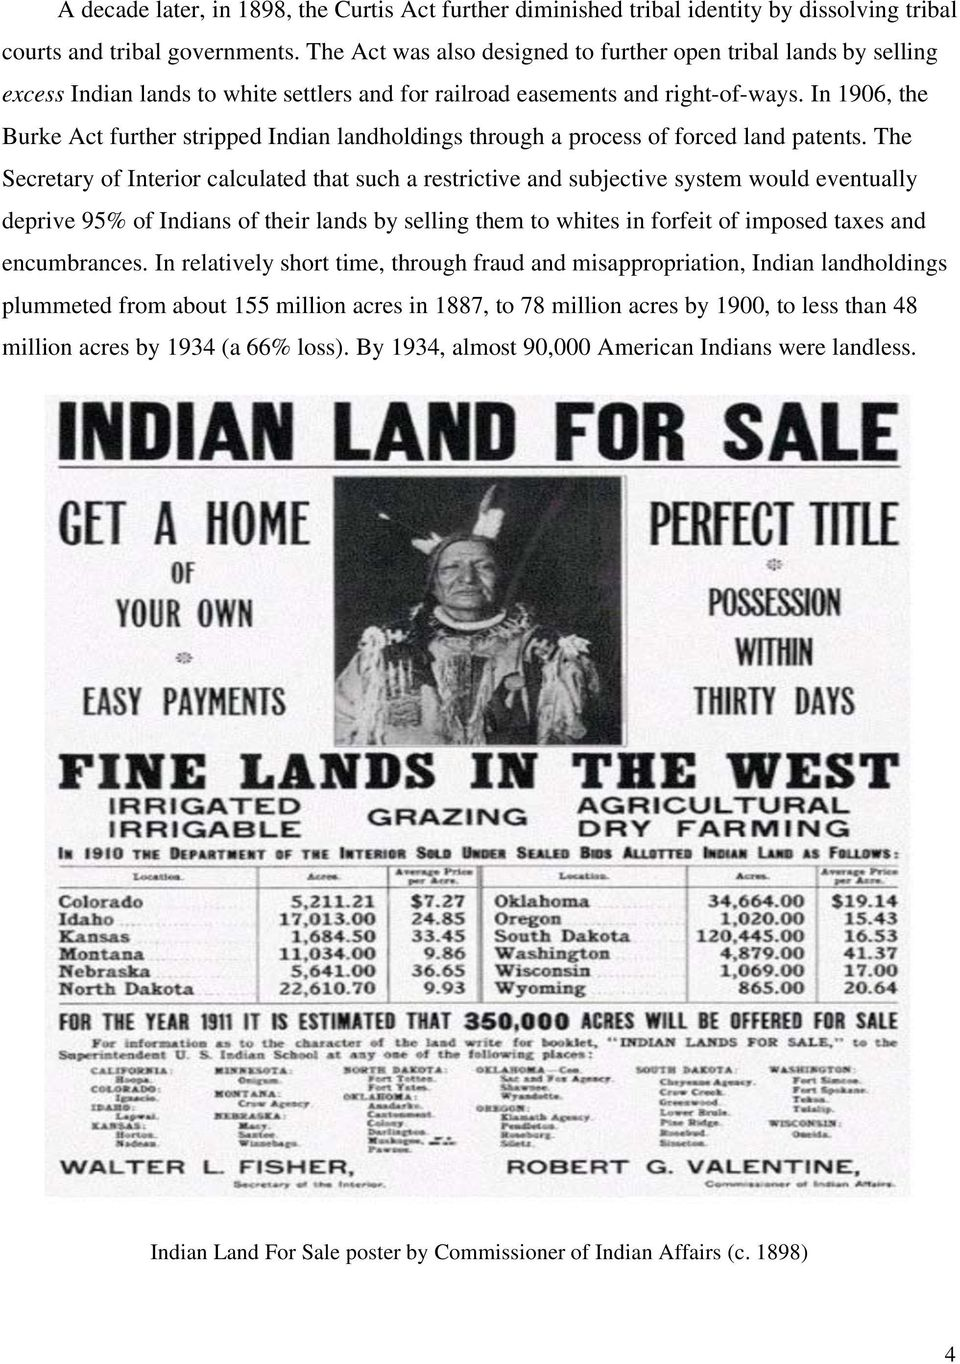 In 1906, the Burke Act further stripped Indian landholdings through a process of forced land patents.